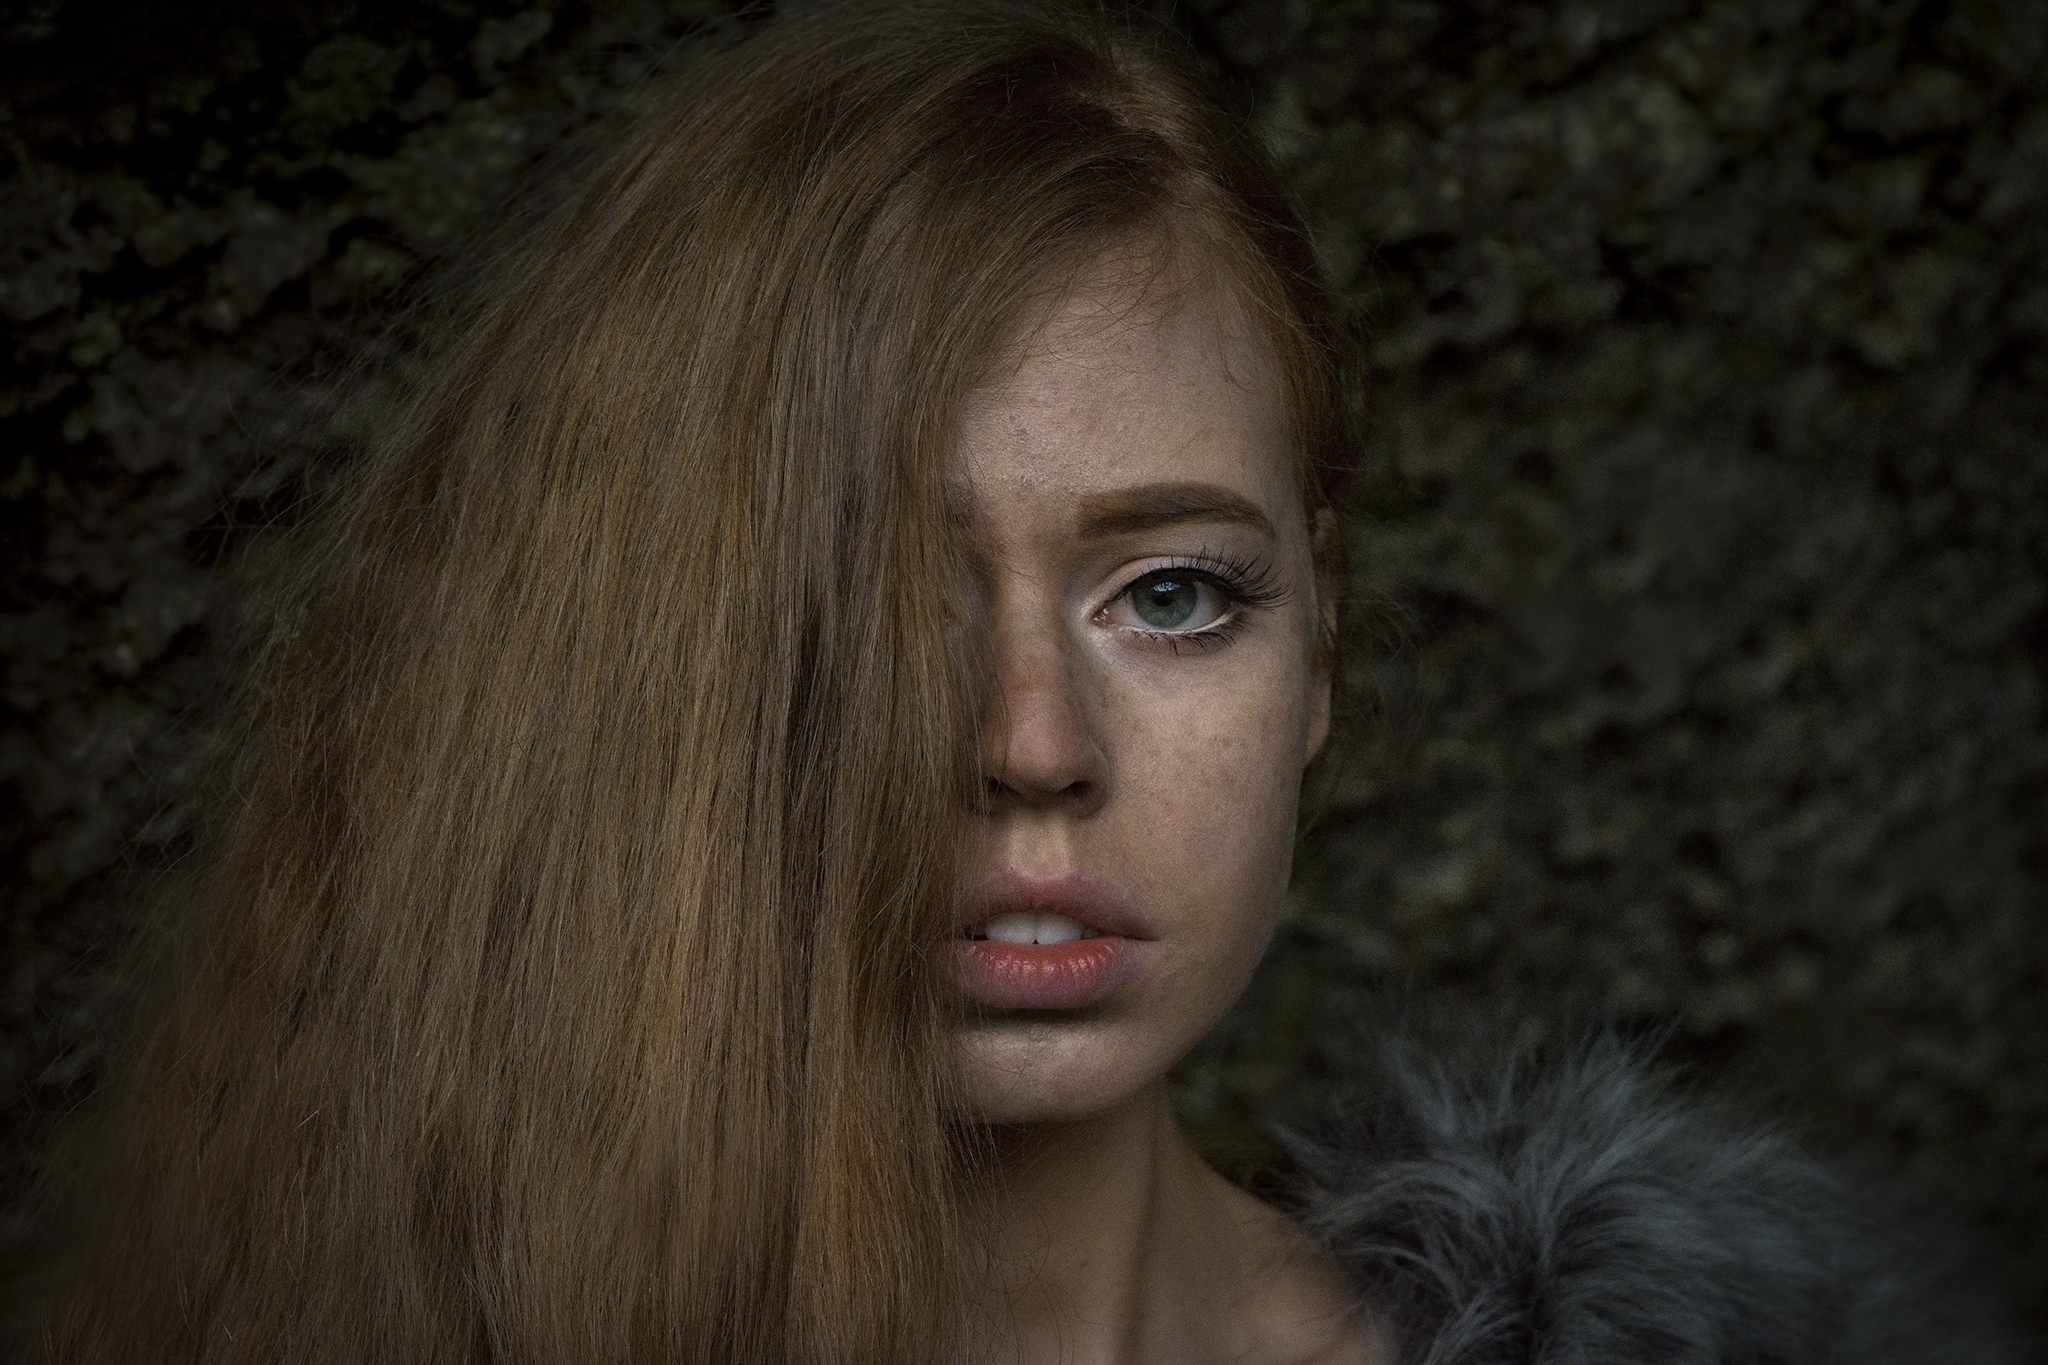 Portrait of an Icelandic girl